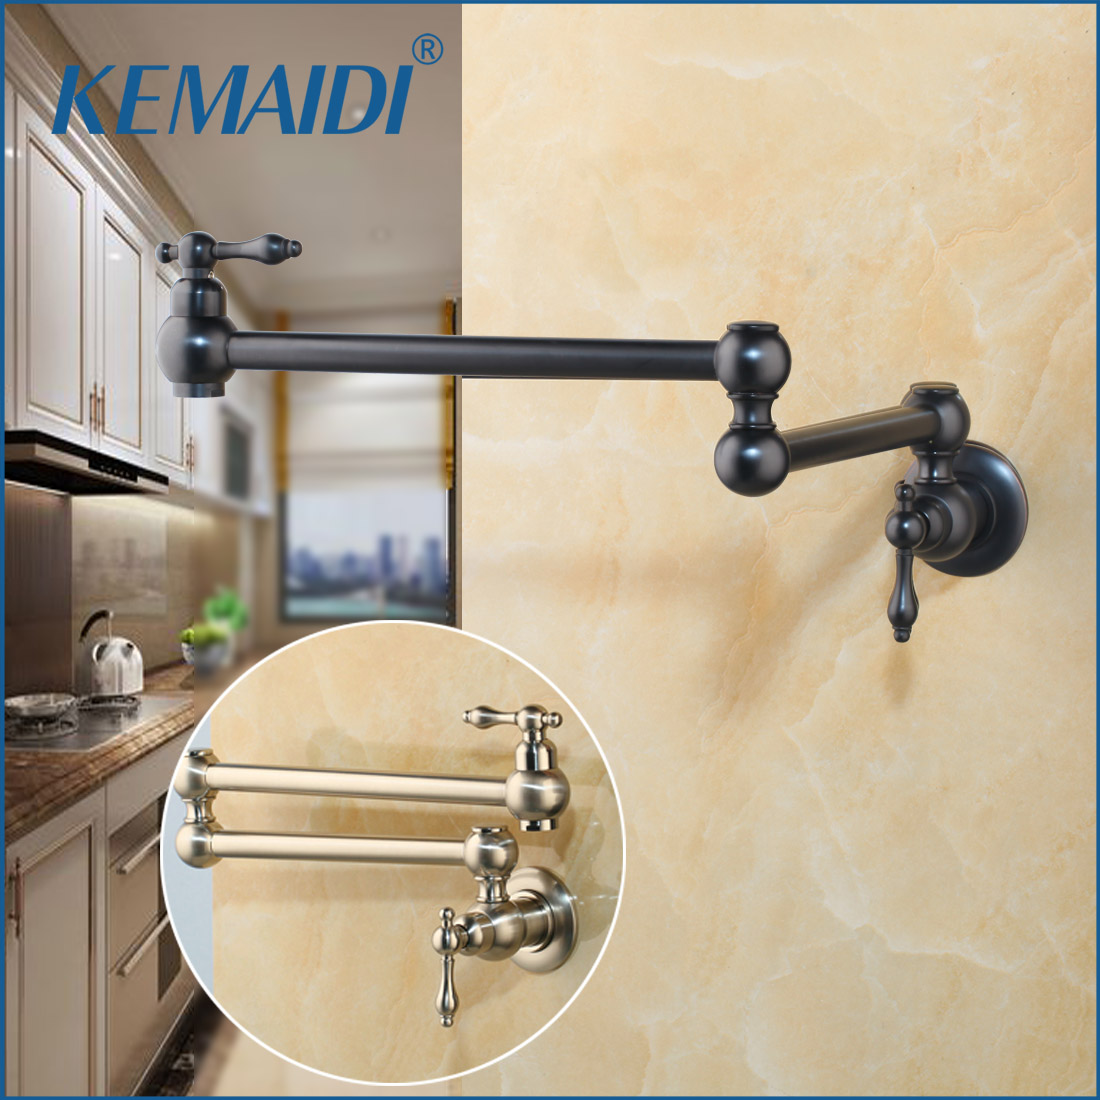 KEMAIDI Bronze Black Nickel Pot Filler Double Joint Spout Folding Stretchable Swing Arm Wall Mounted Brass Kitchen Faucet Tap